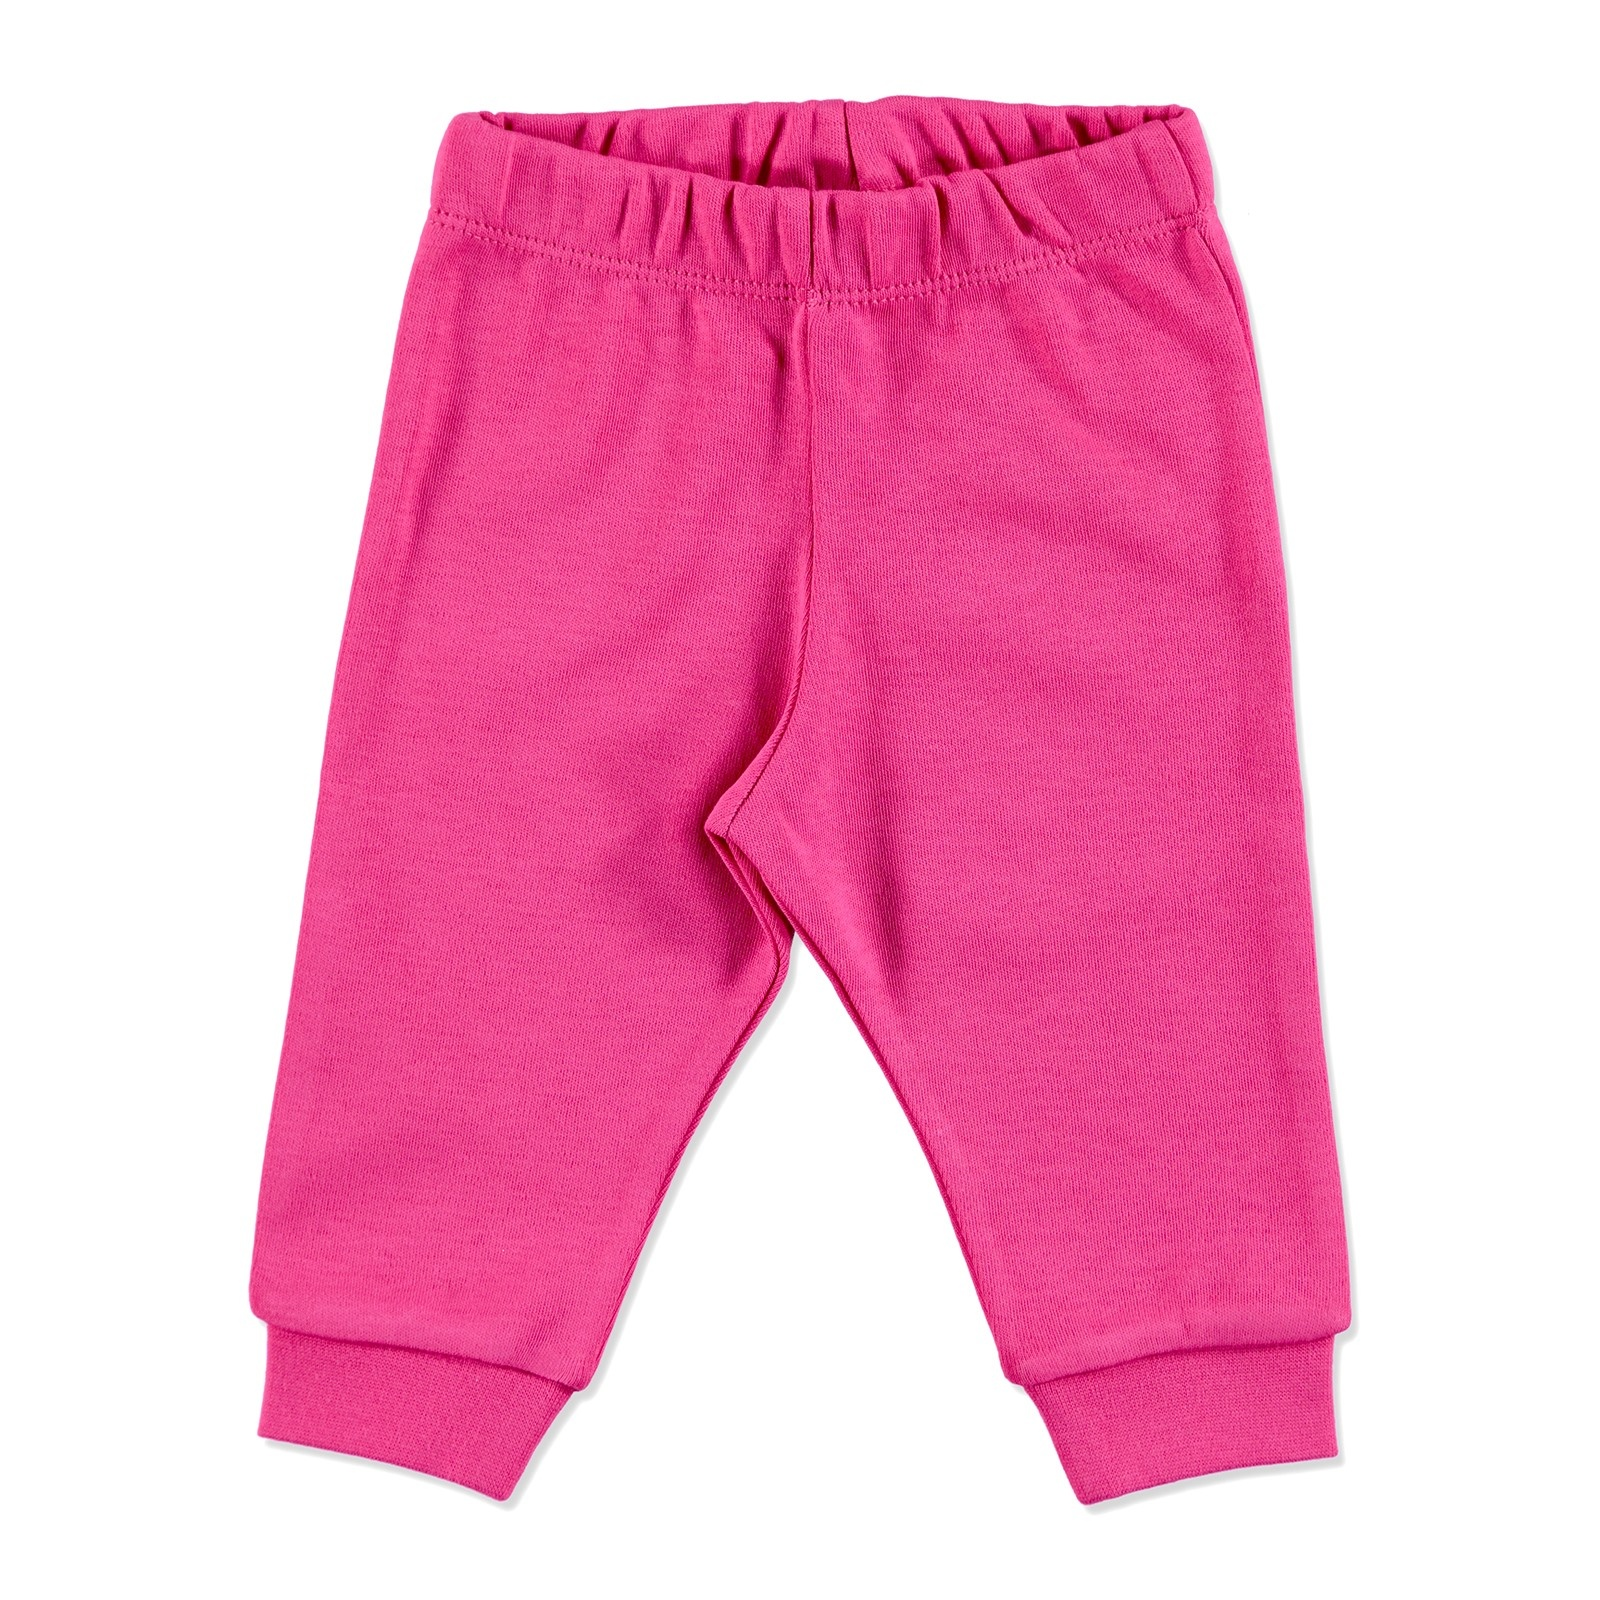 Ebebek HelloBaby Baby Rib Single Trouser Baby Girl Pants For Newborns Baby Leggings